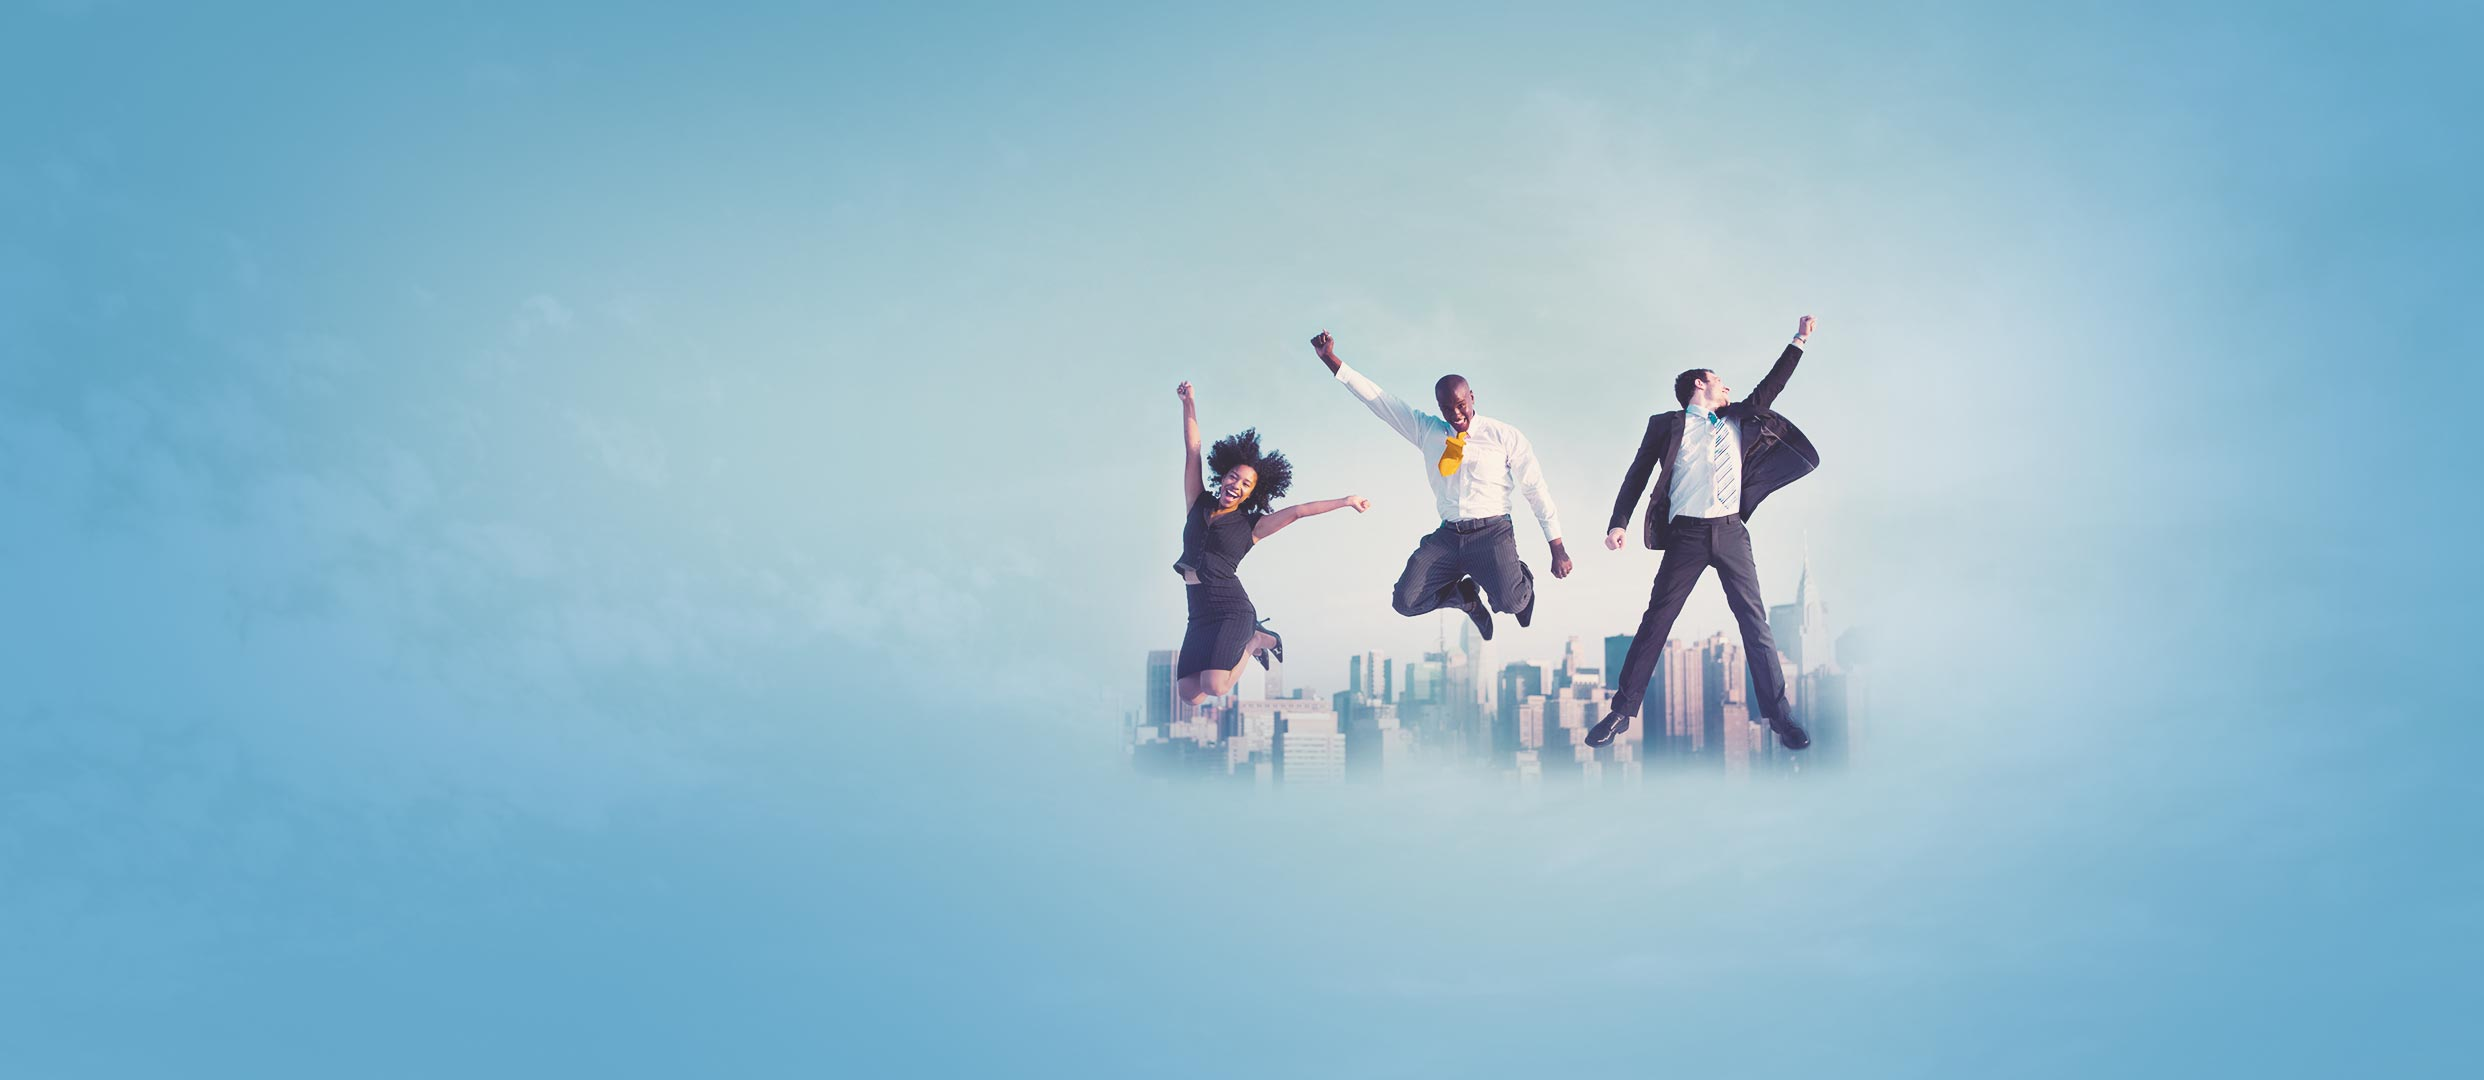 three business people jumping happily with a city background